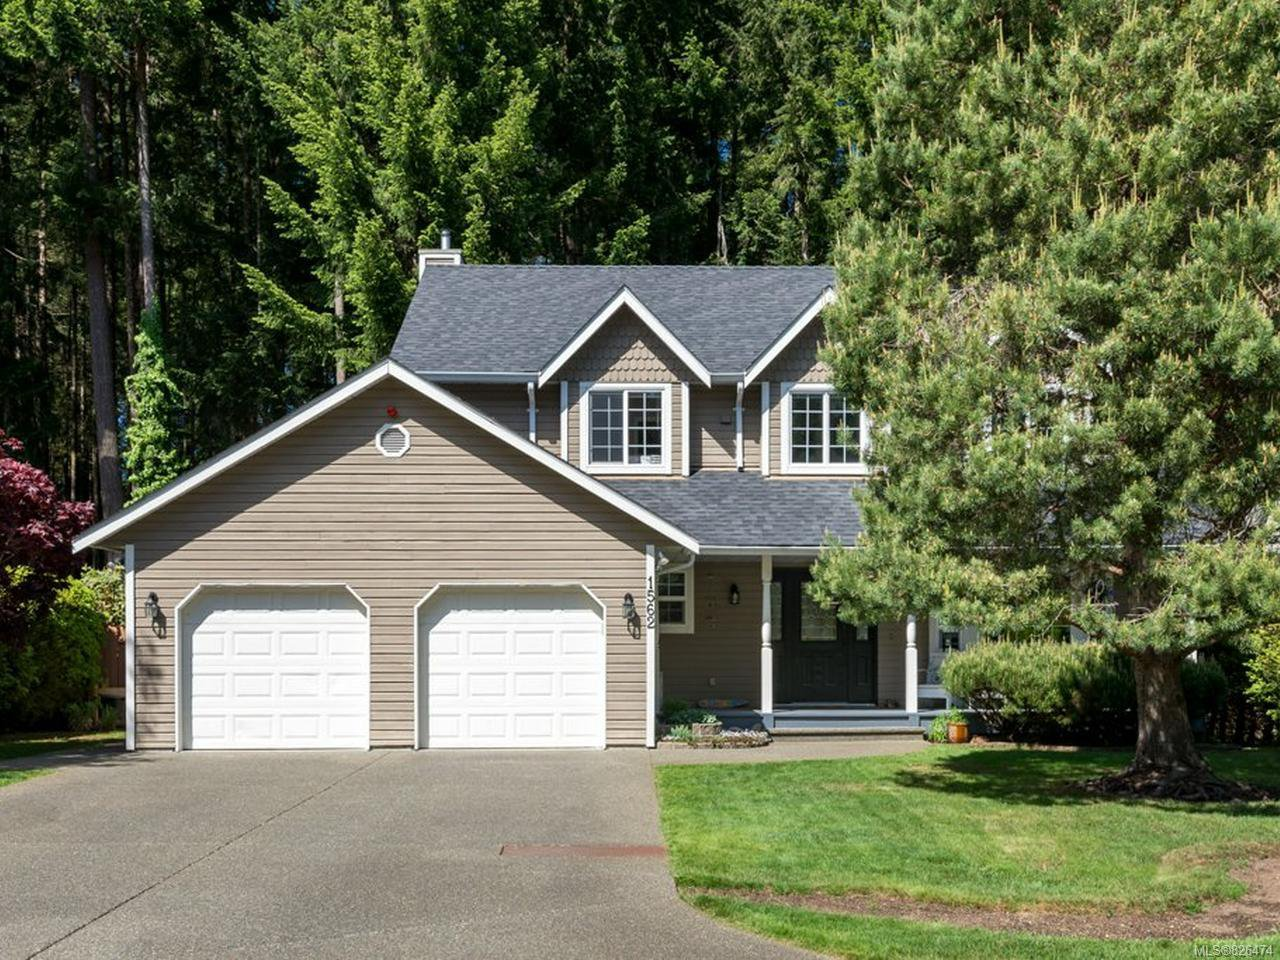 Main Photo: 1562 MULBERRY Lane in COMOX: CV Comox (Town of) House for sale (Comox Valley)  : MLS®# 826474